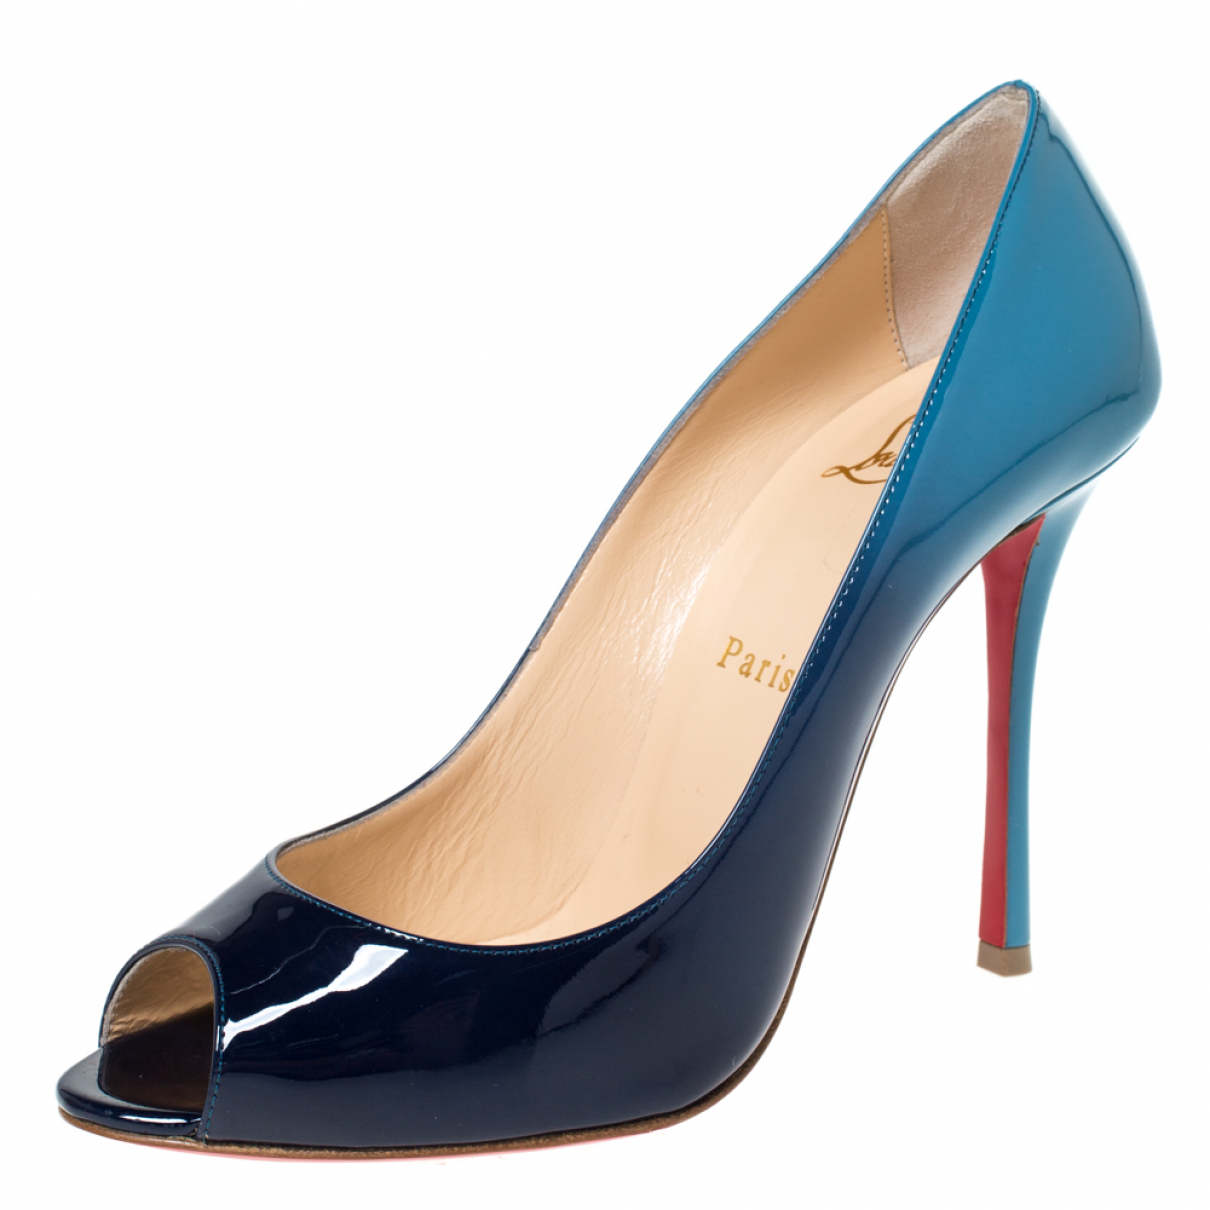 Christian Louboutin N Patent leather Sandals for Women 8.5 US